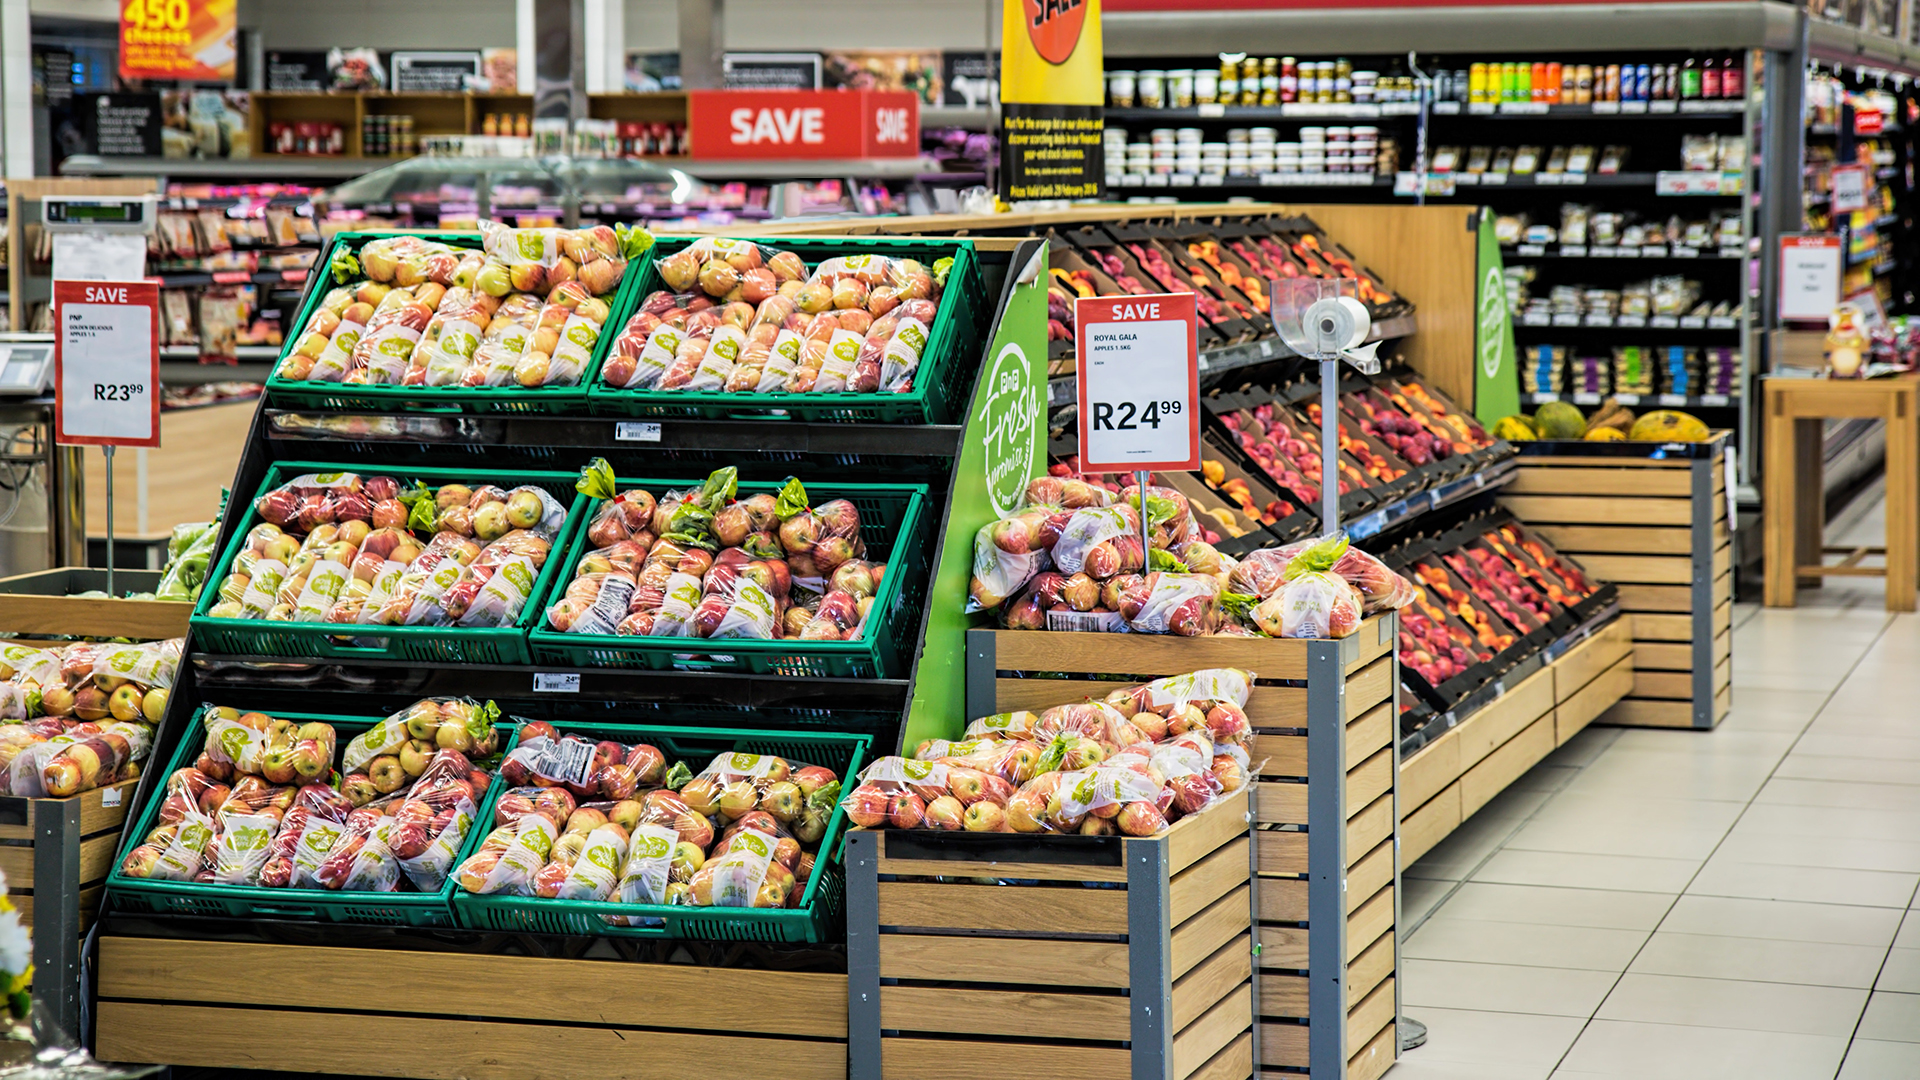 Produce department in a supermarket. Virtual background to use on Zoom, Microsoft Teams, Skype, Google Meet, WebEx or any other compatible app.